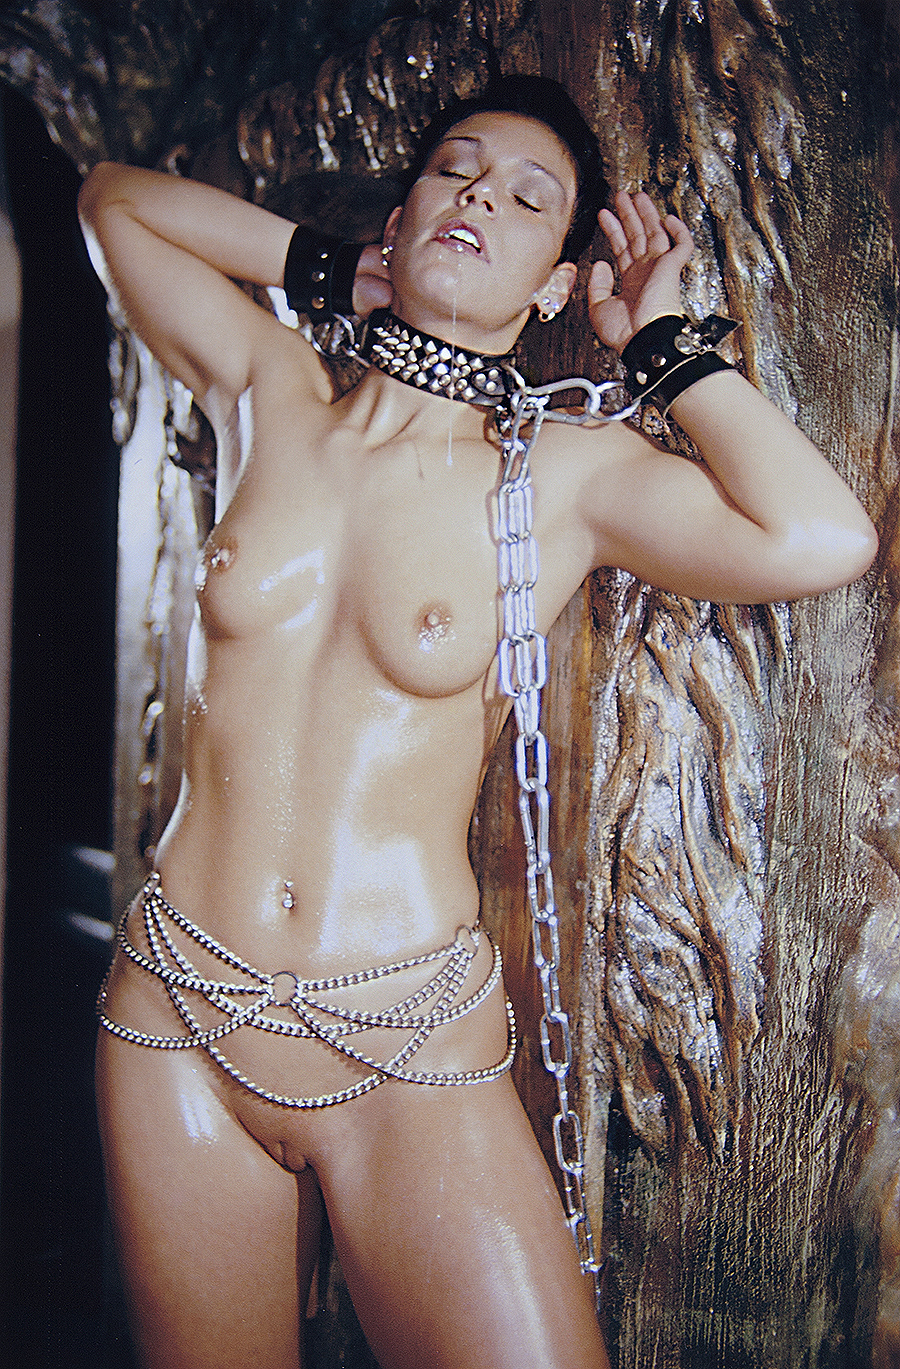 Tony_Ward_erotica_fetish_throwup_chains_dungeon_model_german_hamburg_chain_band